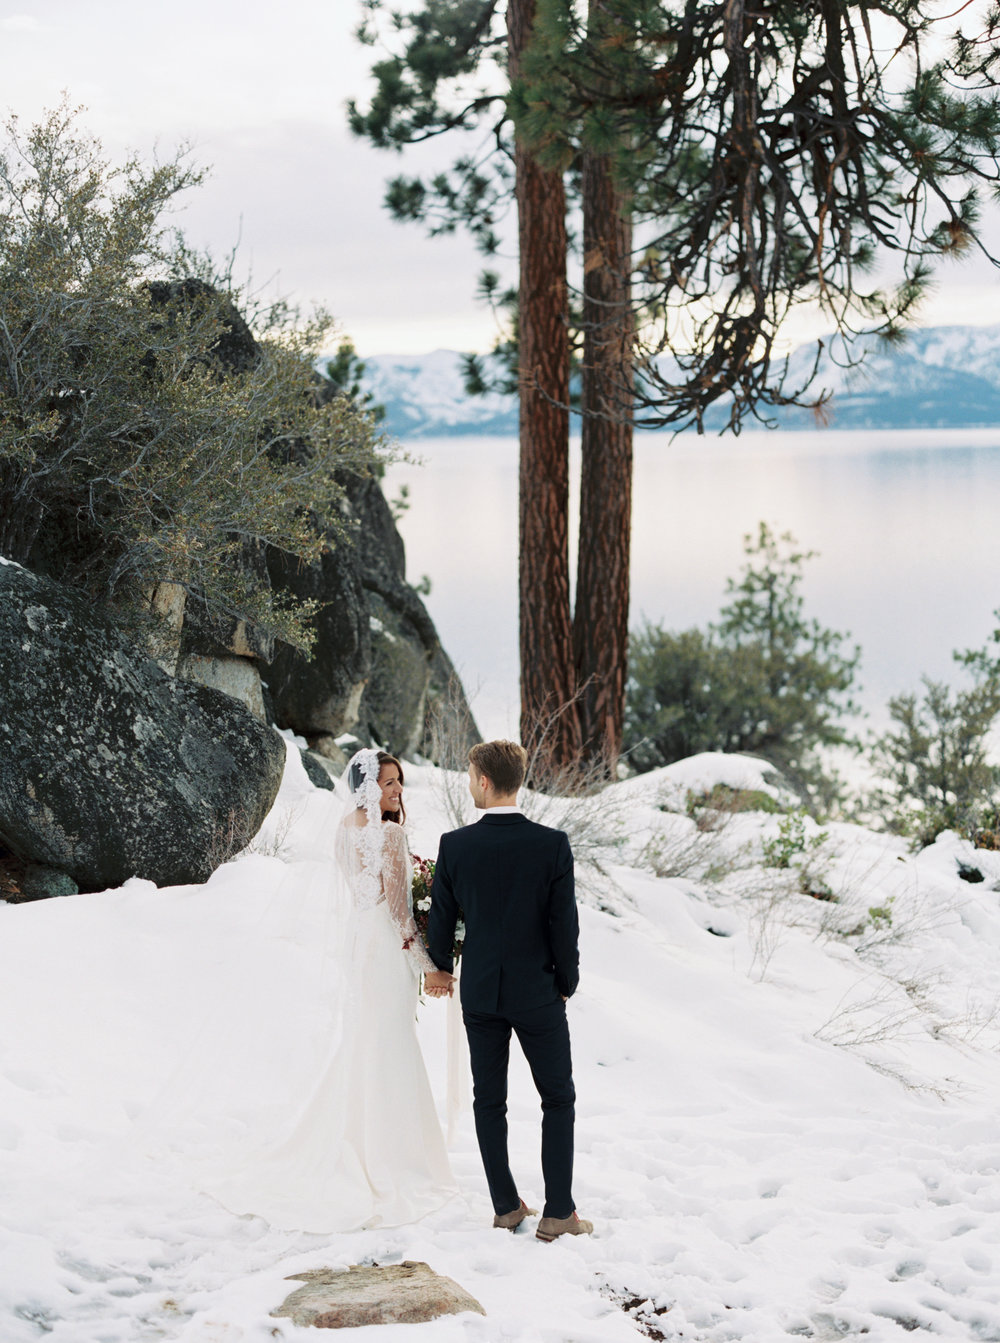 Logan's Shoals Winter Elopement in Lake Tahoe, NV - Coston & Co.